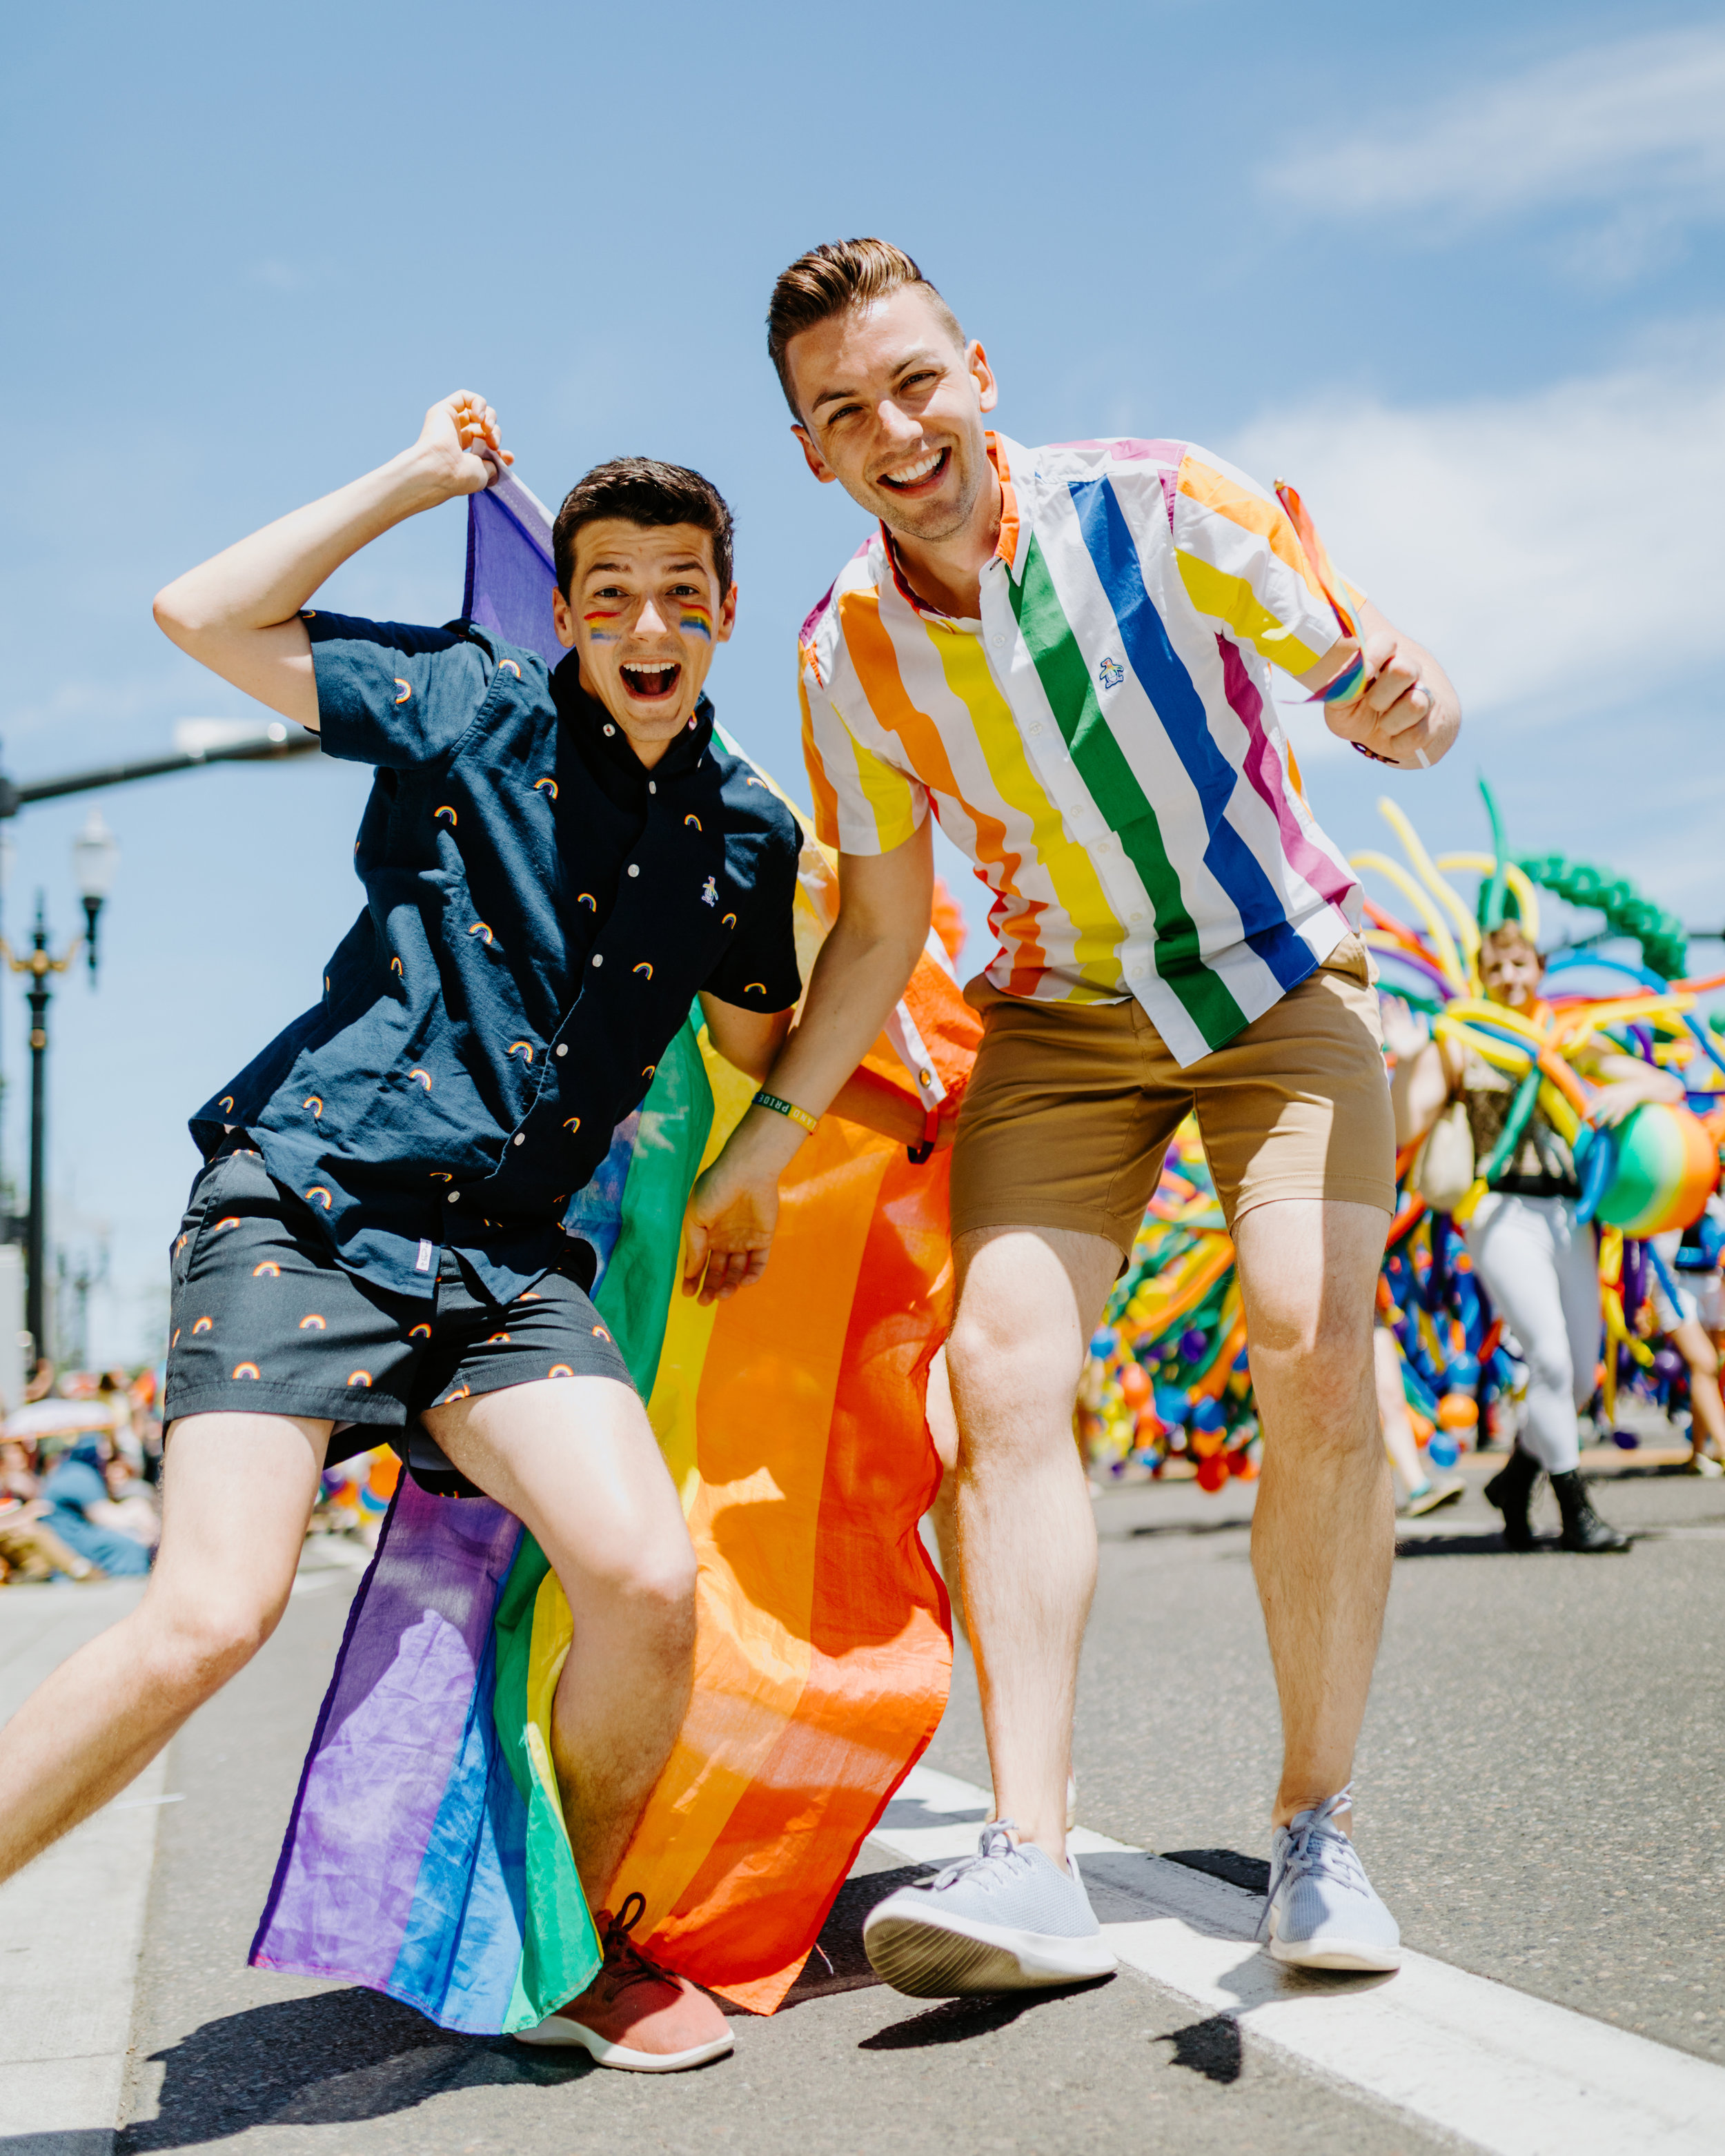 Hello! - We're Michael and Matt! Two travel-obsessed husbands from Portland, Oregon. We are sharing our stories to bring you the best of the best in LGBTQ+ travel destinations, gay travel tips, hints, and advice from local guides and the experts themselves! We hope that what we share not only inspires you to travel, but provides you with the information you need to plan your itineraries and take the best trips of your life!We first met in 2014 over YouTube, through posting our coming out videos. One week later, Michael purchased a flight to visit Matthew in Seattle. And the rest? Basically history! We fell in love, Matthew moved to Nebraska for a number of years to be with Michael while he worked through Dental school, and after graduation, we got married! Michael works as a full-time dentist, and Matthew works as a full-time freelance photographer and writer.When we are not traveling or working, we create and post content on YouTube and Instagram, and here on our blog!For more information on Michael and Matt's work, to inquire about a potential project, or to just say hello, feel free to get in touch.